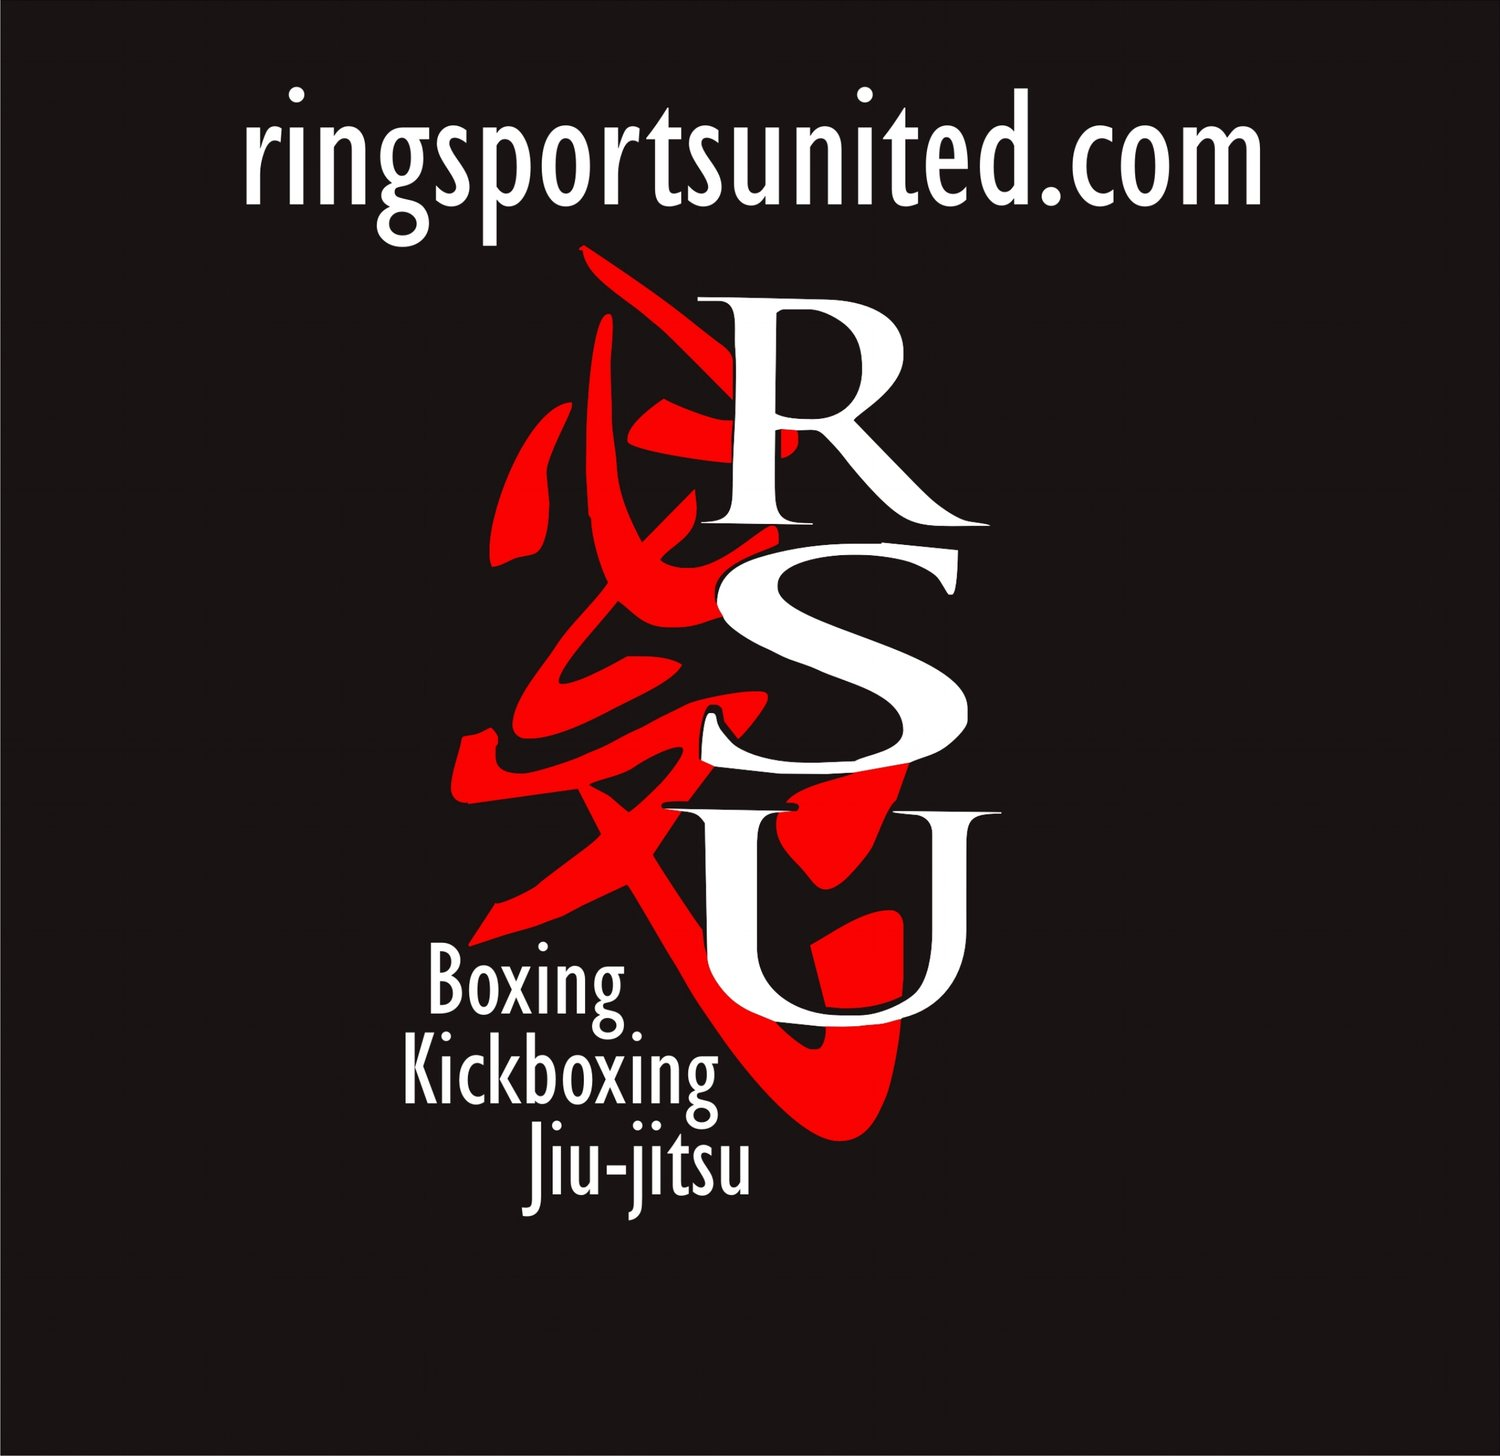 Ring Sports United